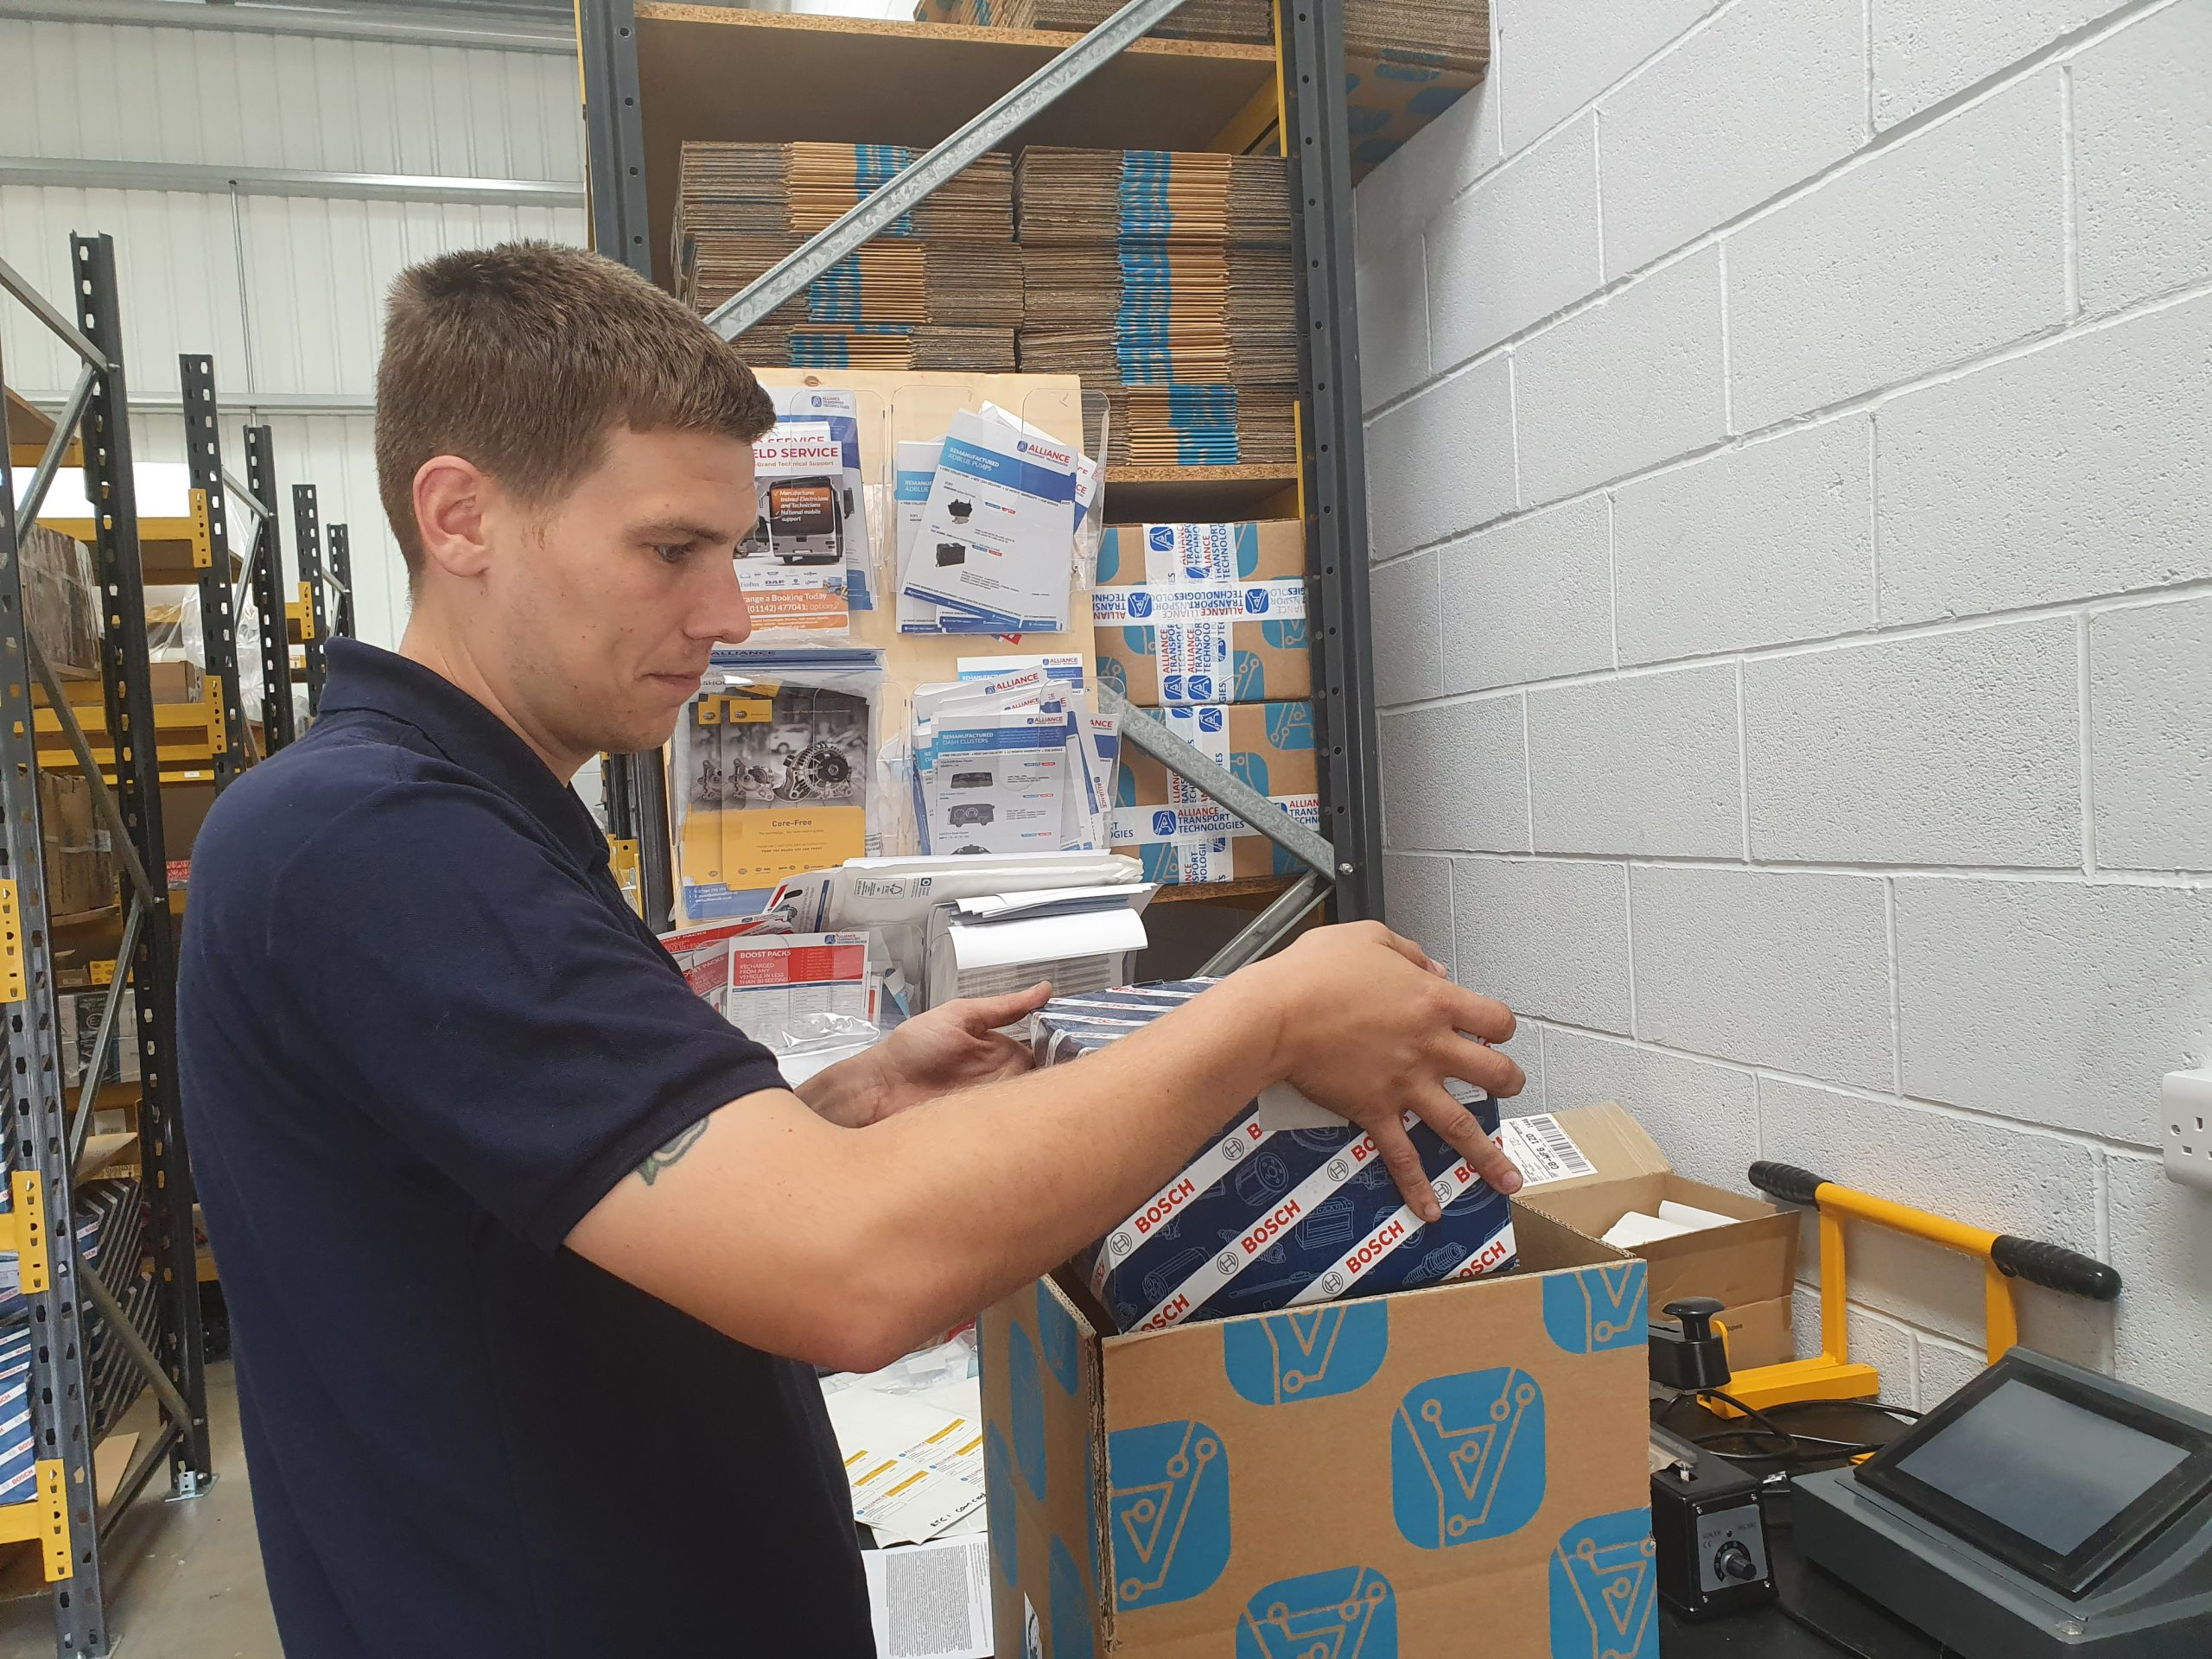 parts_packing_boxes_warehouse